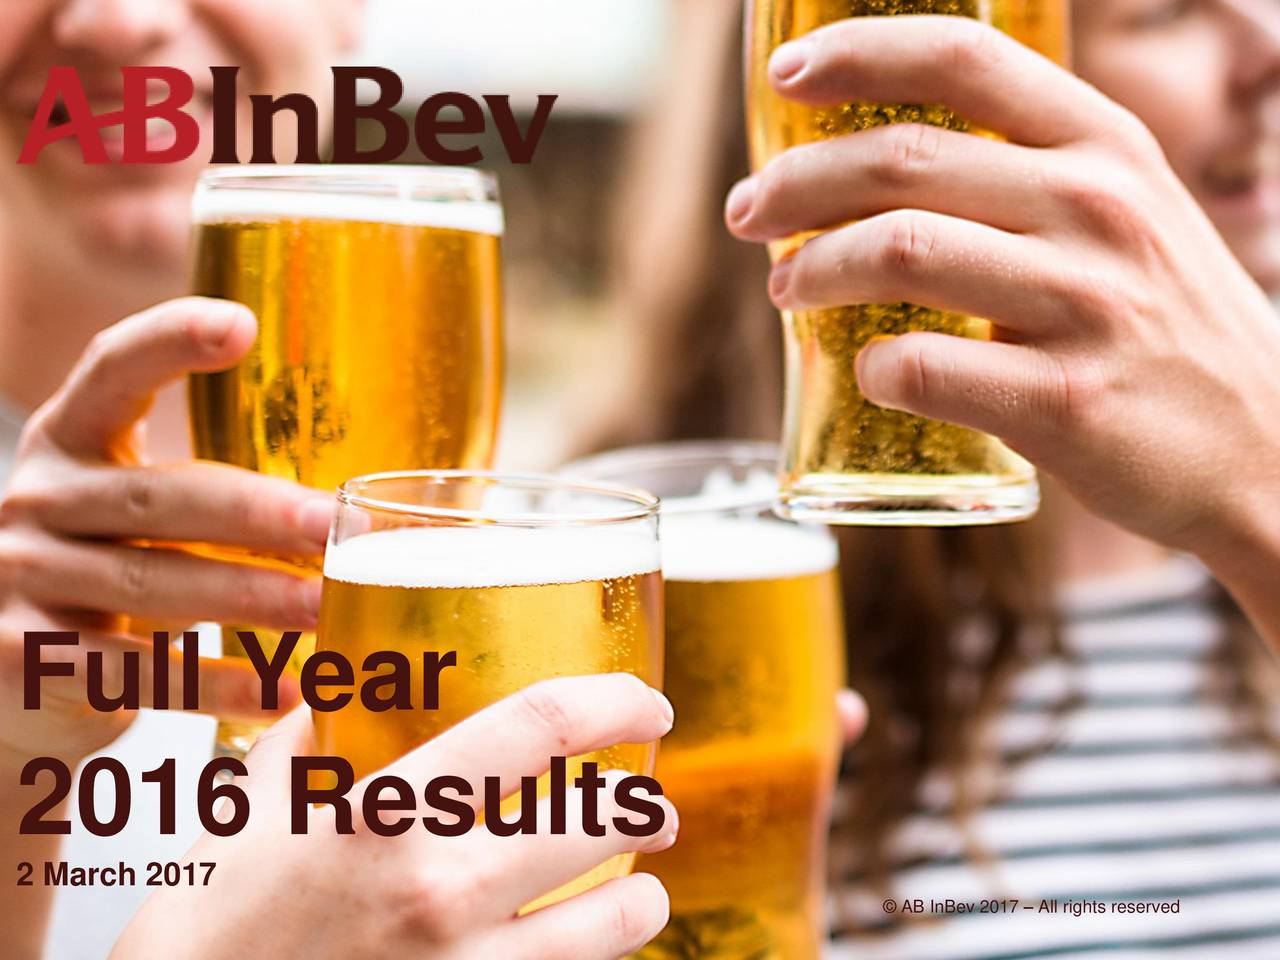 2016 Results 2 March 2017  AB InBev 2017  All rights reserved